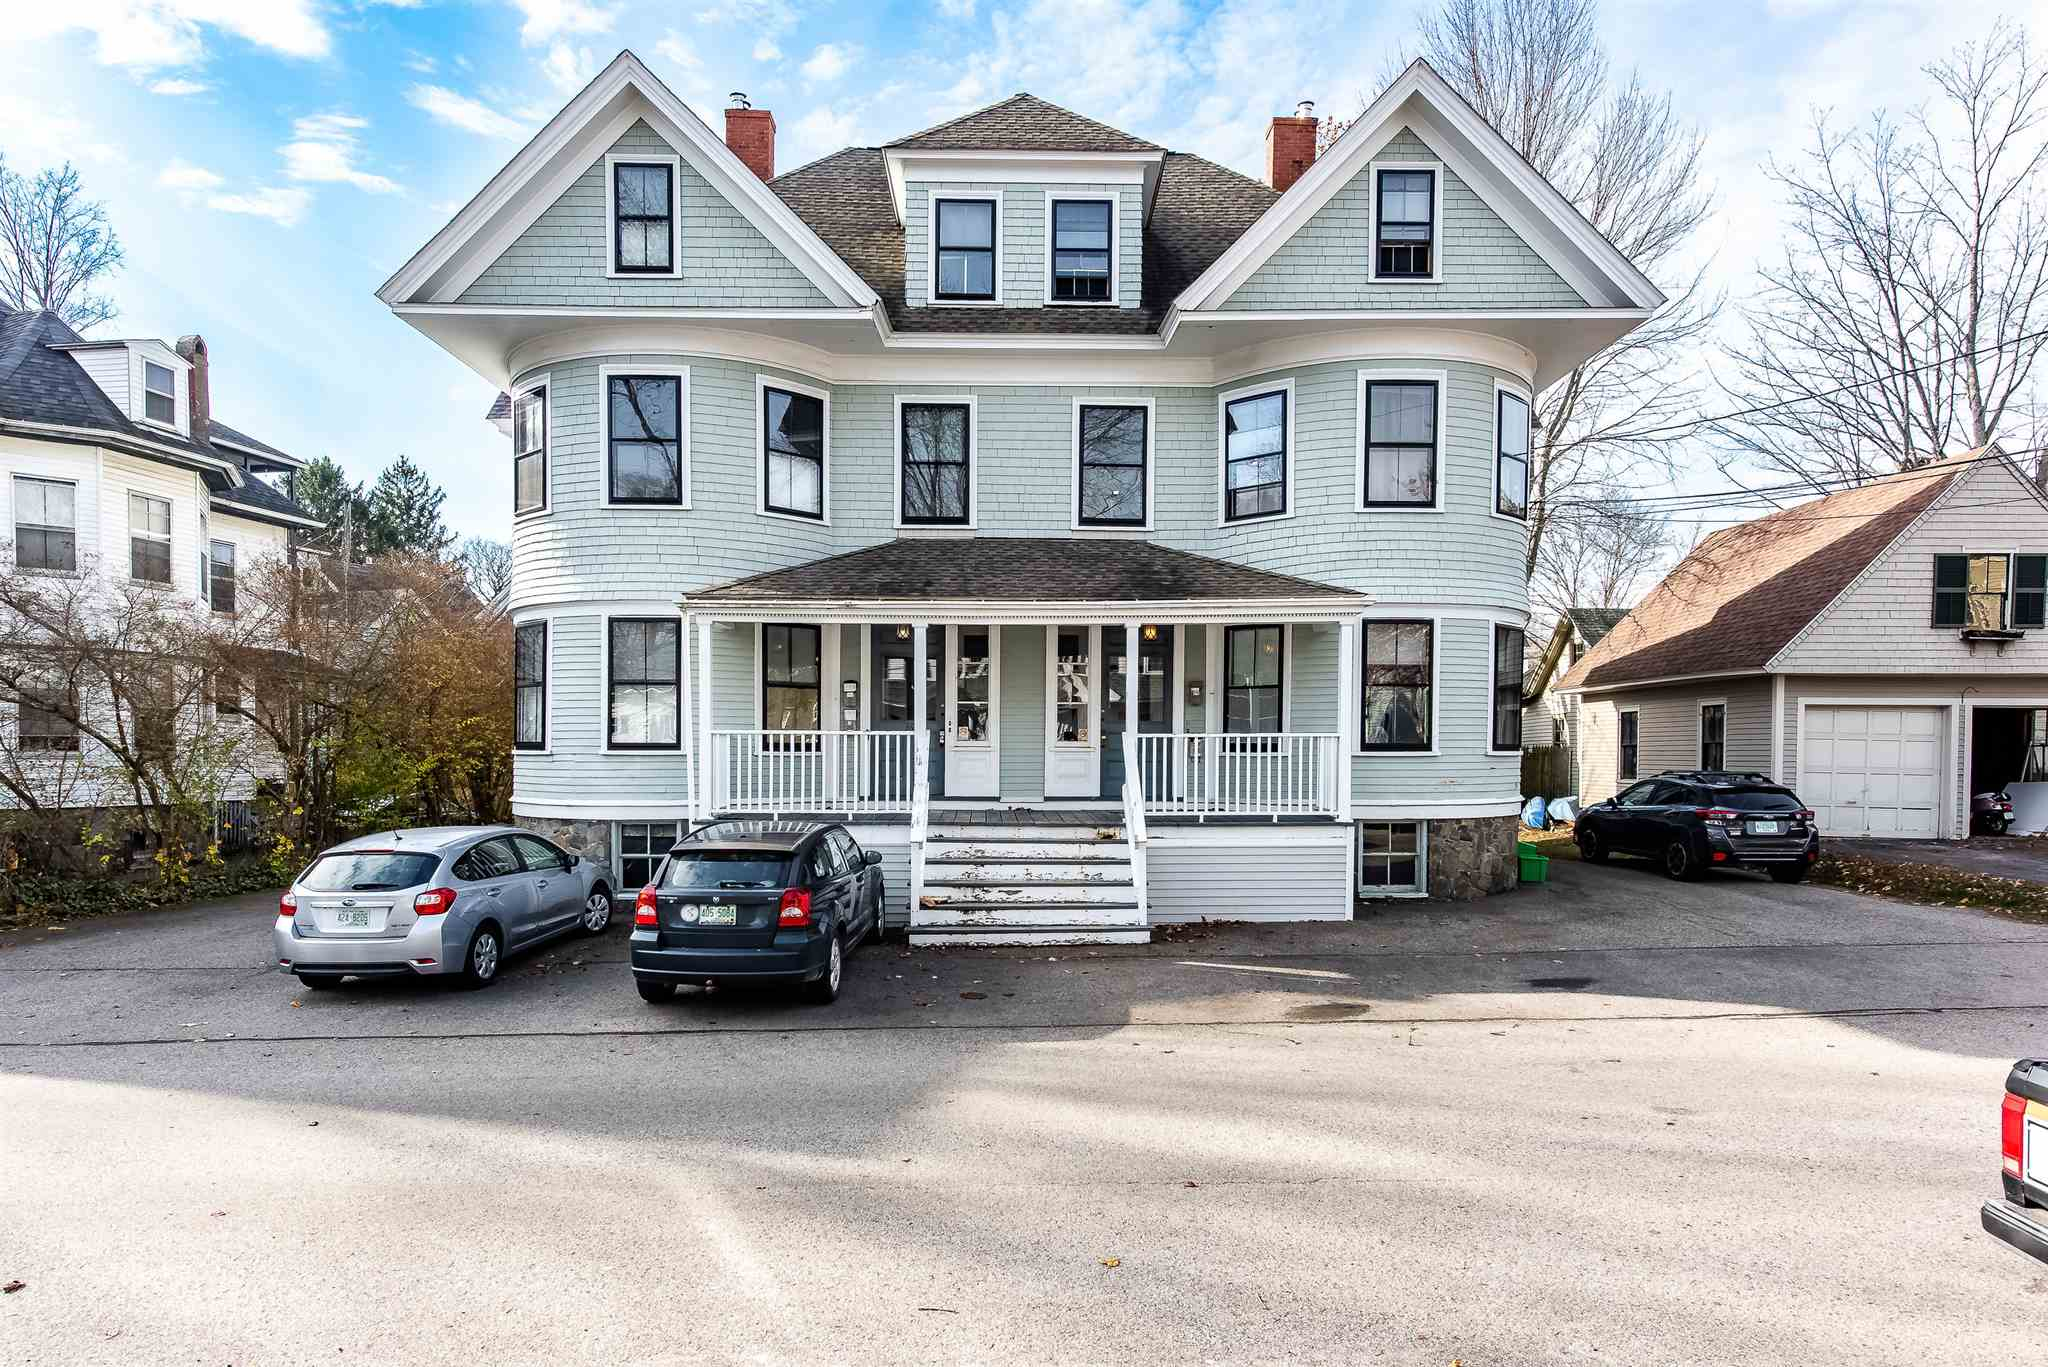 Photo of 34-36 Highland Street Portsmouth NH 03801